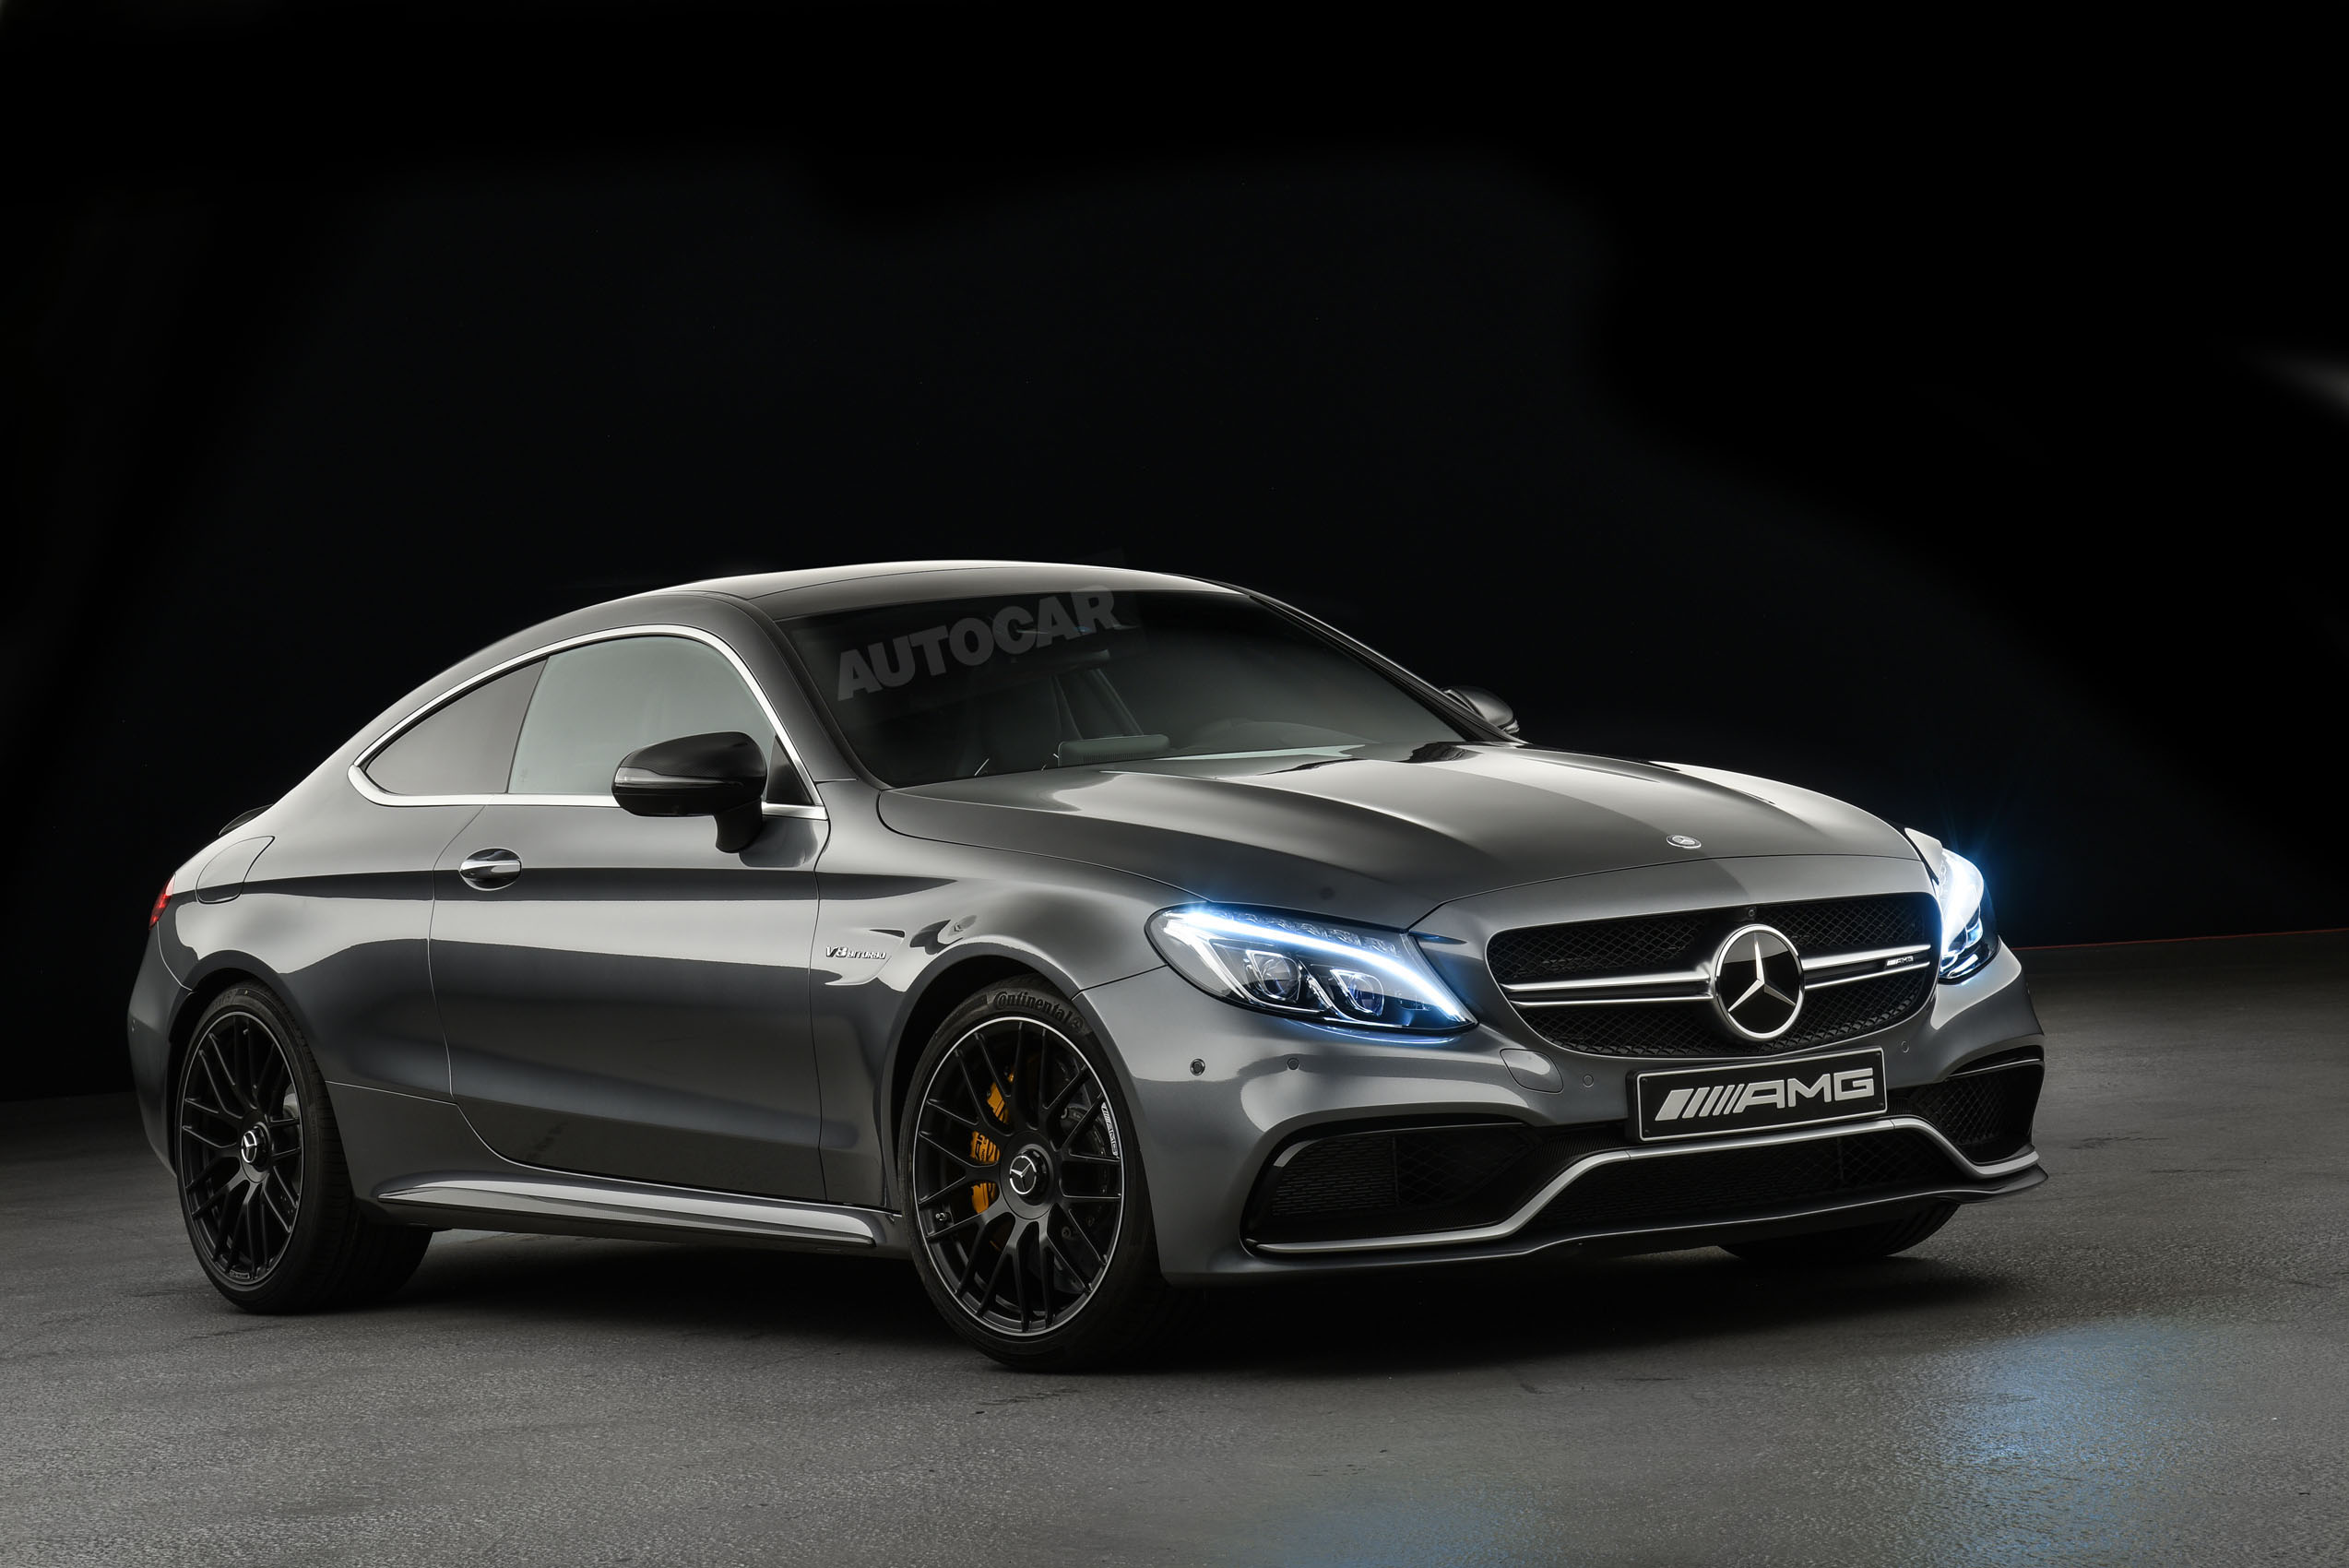 2016 Mercedes Amg C63 Coupe Revealed Exclusive Studio Pictures Benz S500 Wiring Diagram Autocar